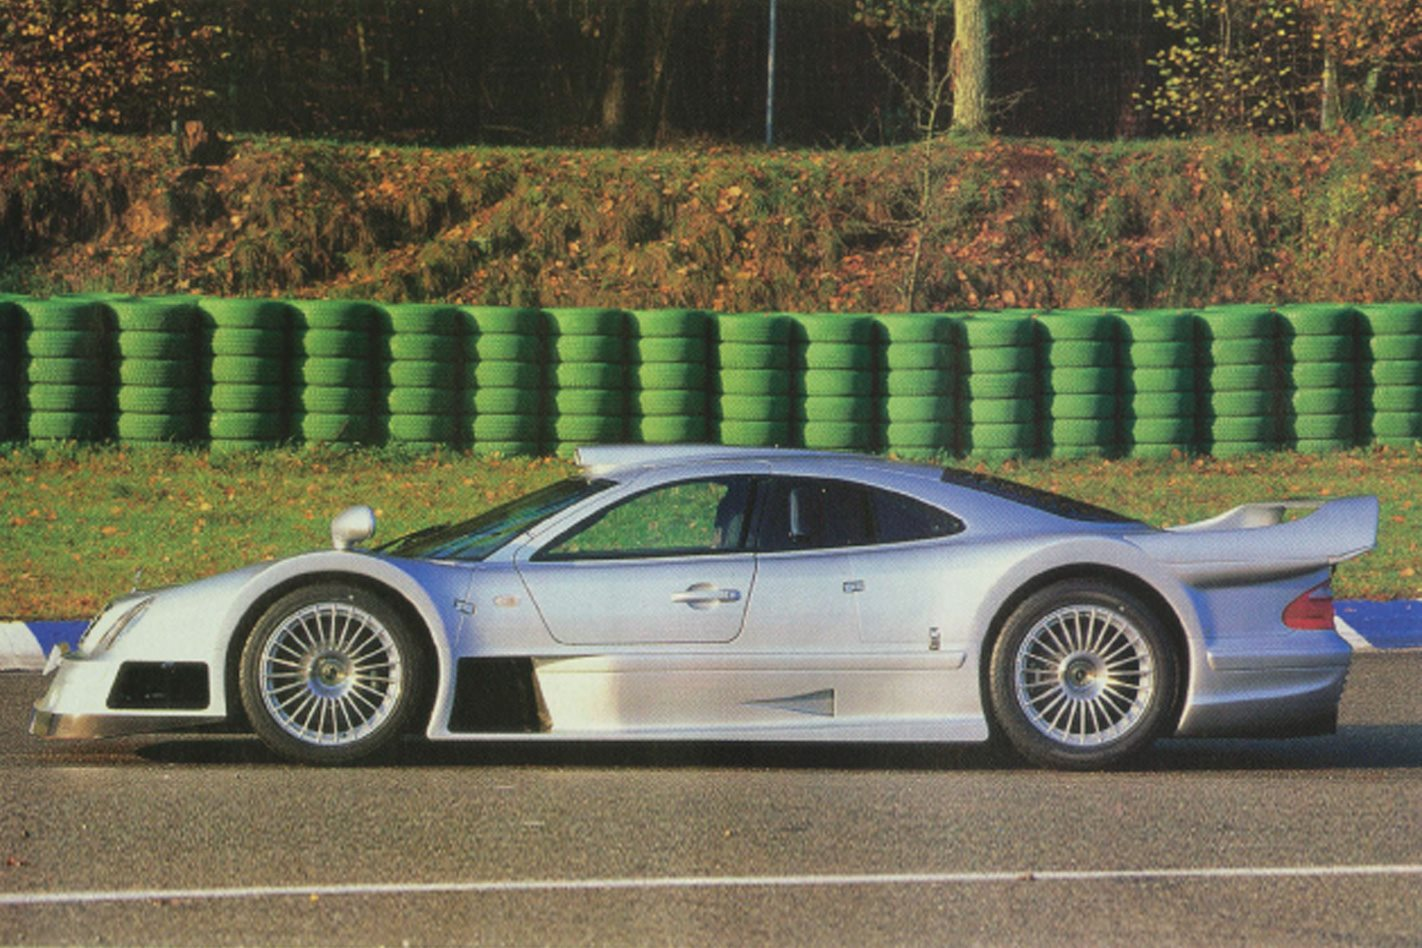 Clk Gtr Road Car Review